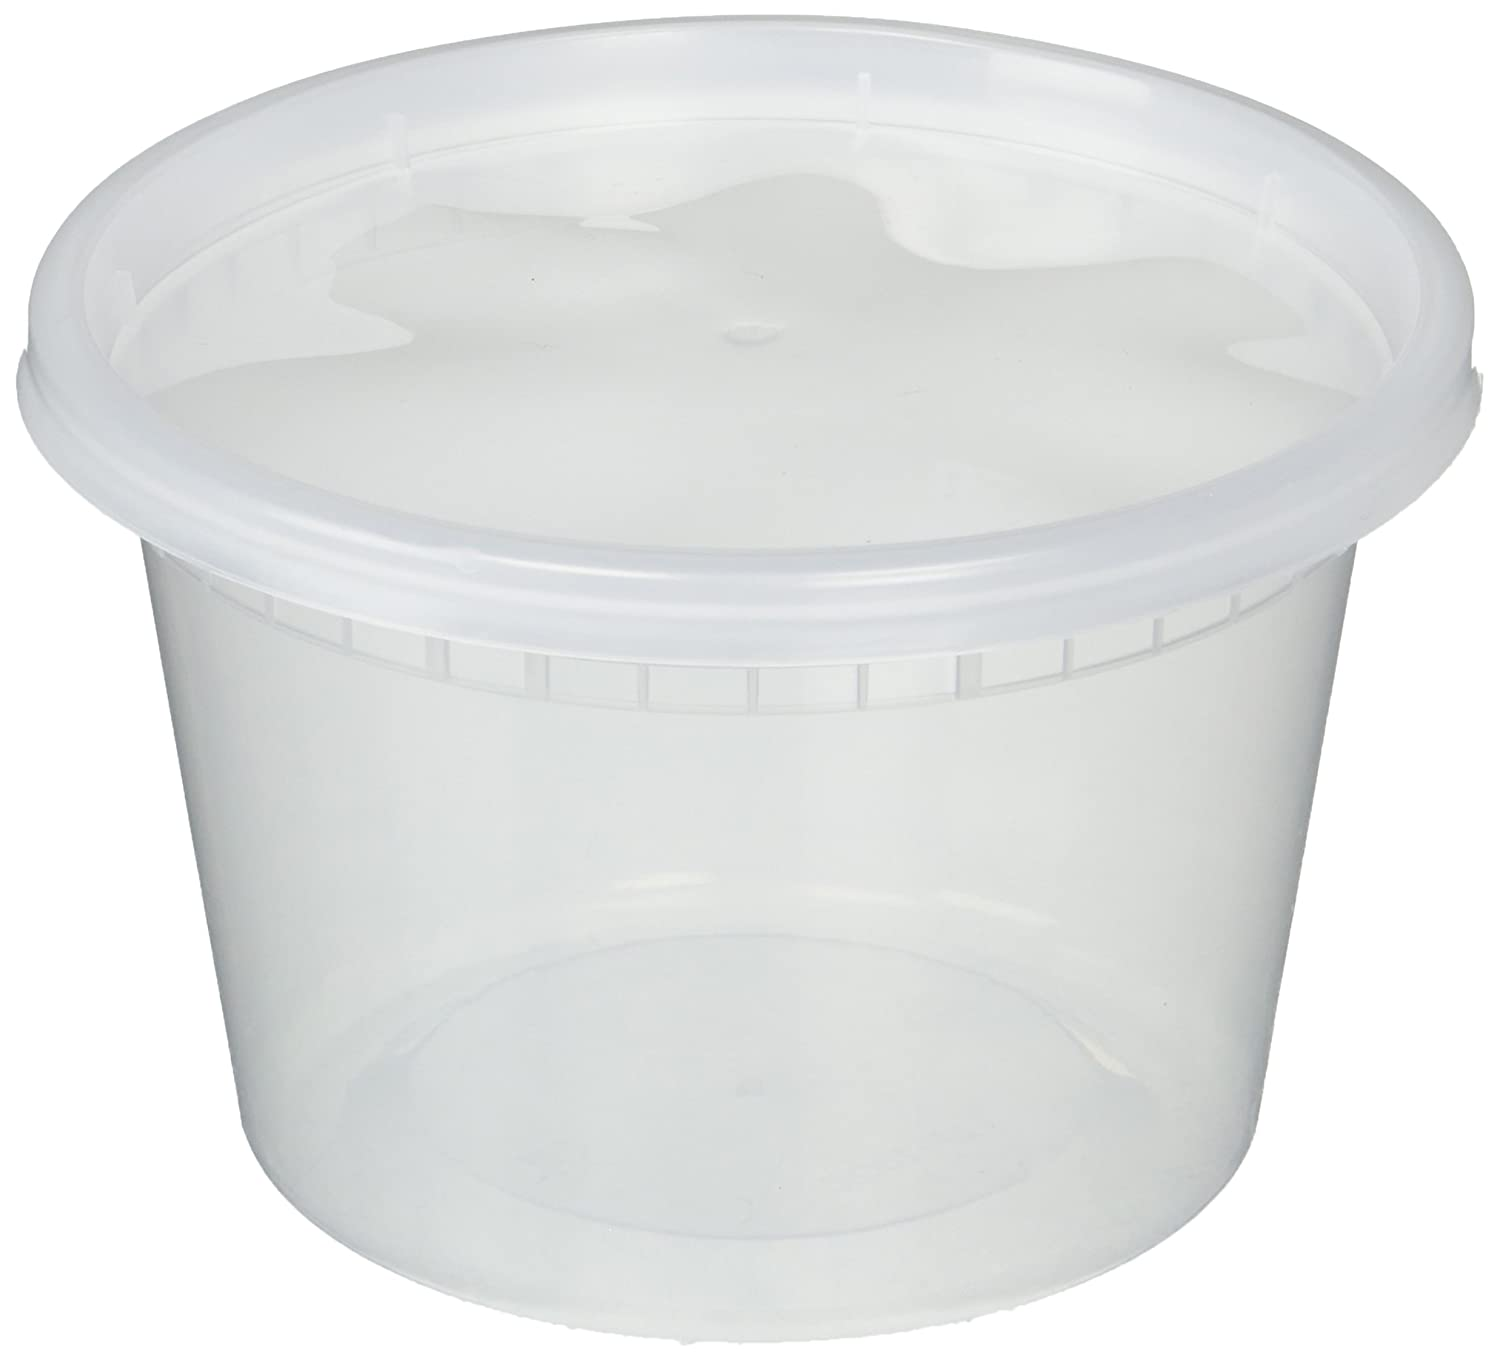 Deli Food Storage Containers with Lids, 16 Ounce, 50 Count made by DCS Deals